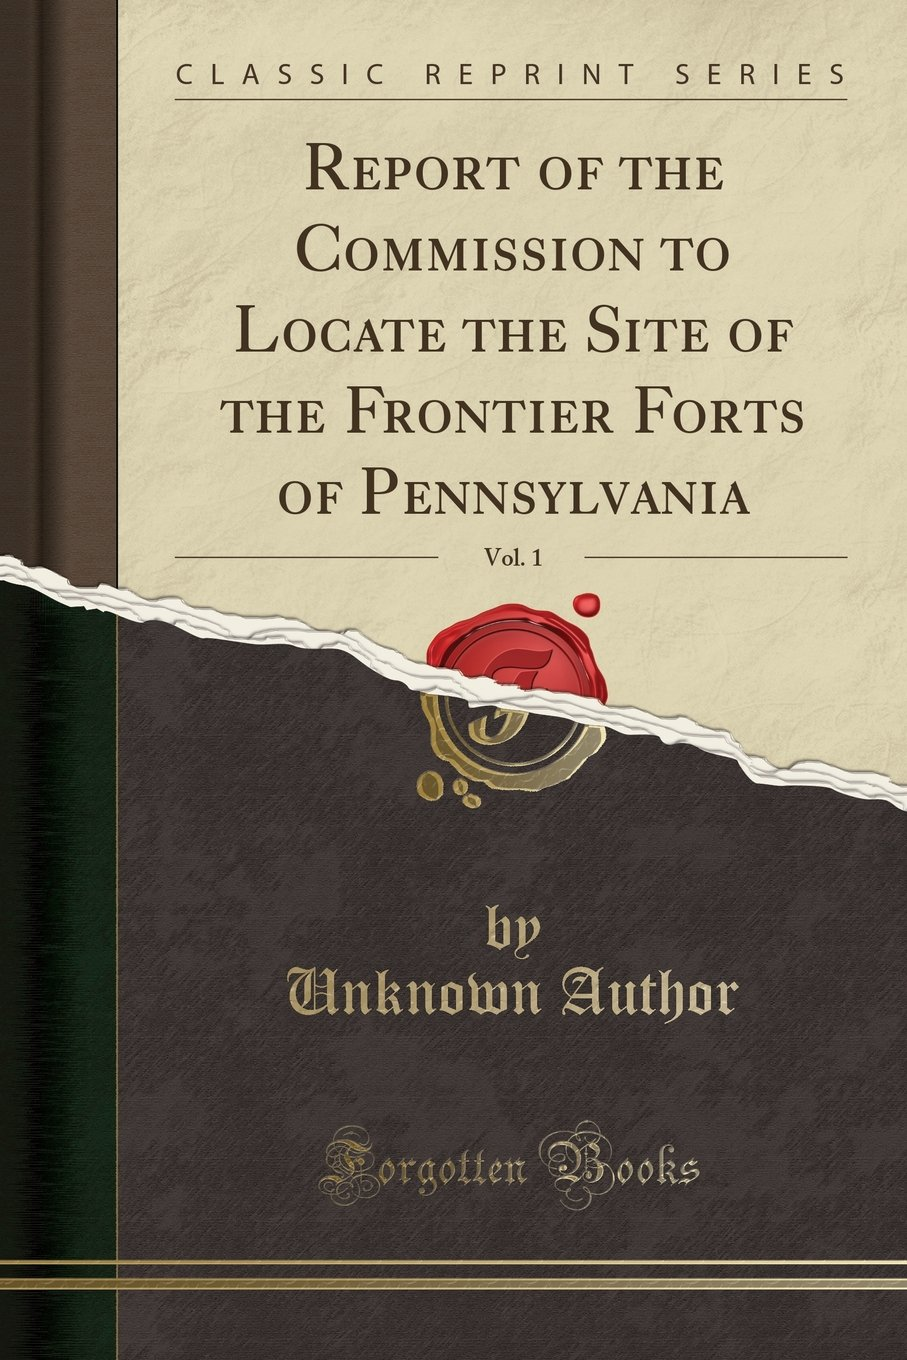 Report of the Commission to Locate the Site of the Frontier Forts of Pennsylvania, Vol. 1 (Classic Reprint) pdf epub